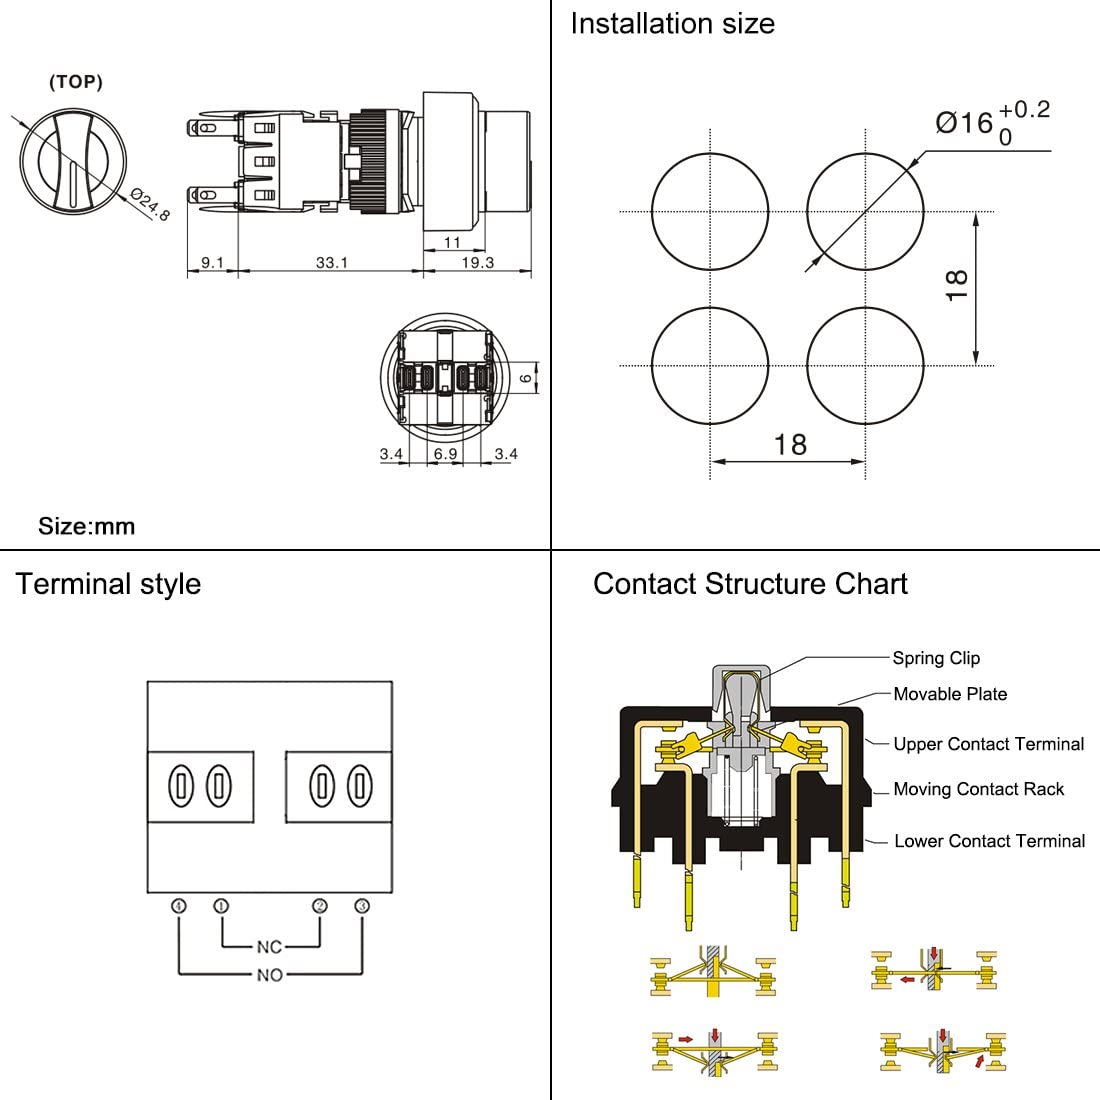 uxcell Latching Rotary Selector Switch AC 250V 0.5A 16mm Panel Cutout Dia DPDT 2NO 2NC 1//0//2 3 Position Round Head 8 Terminals